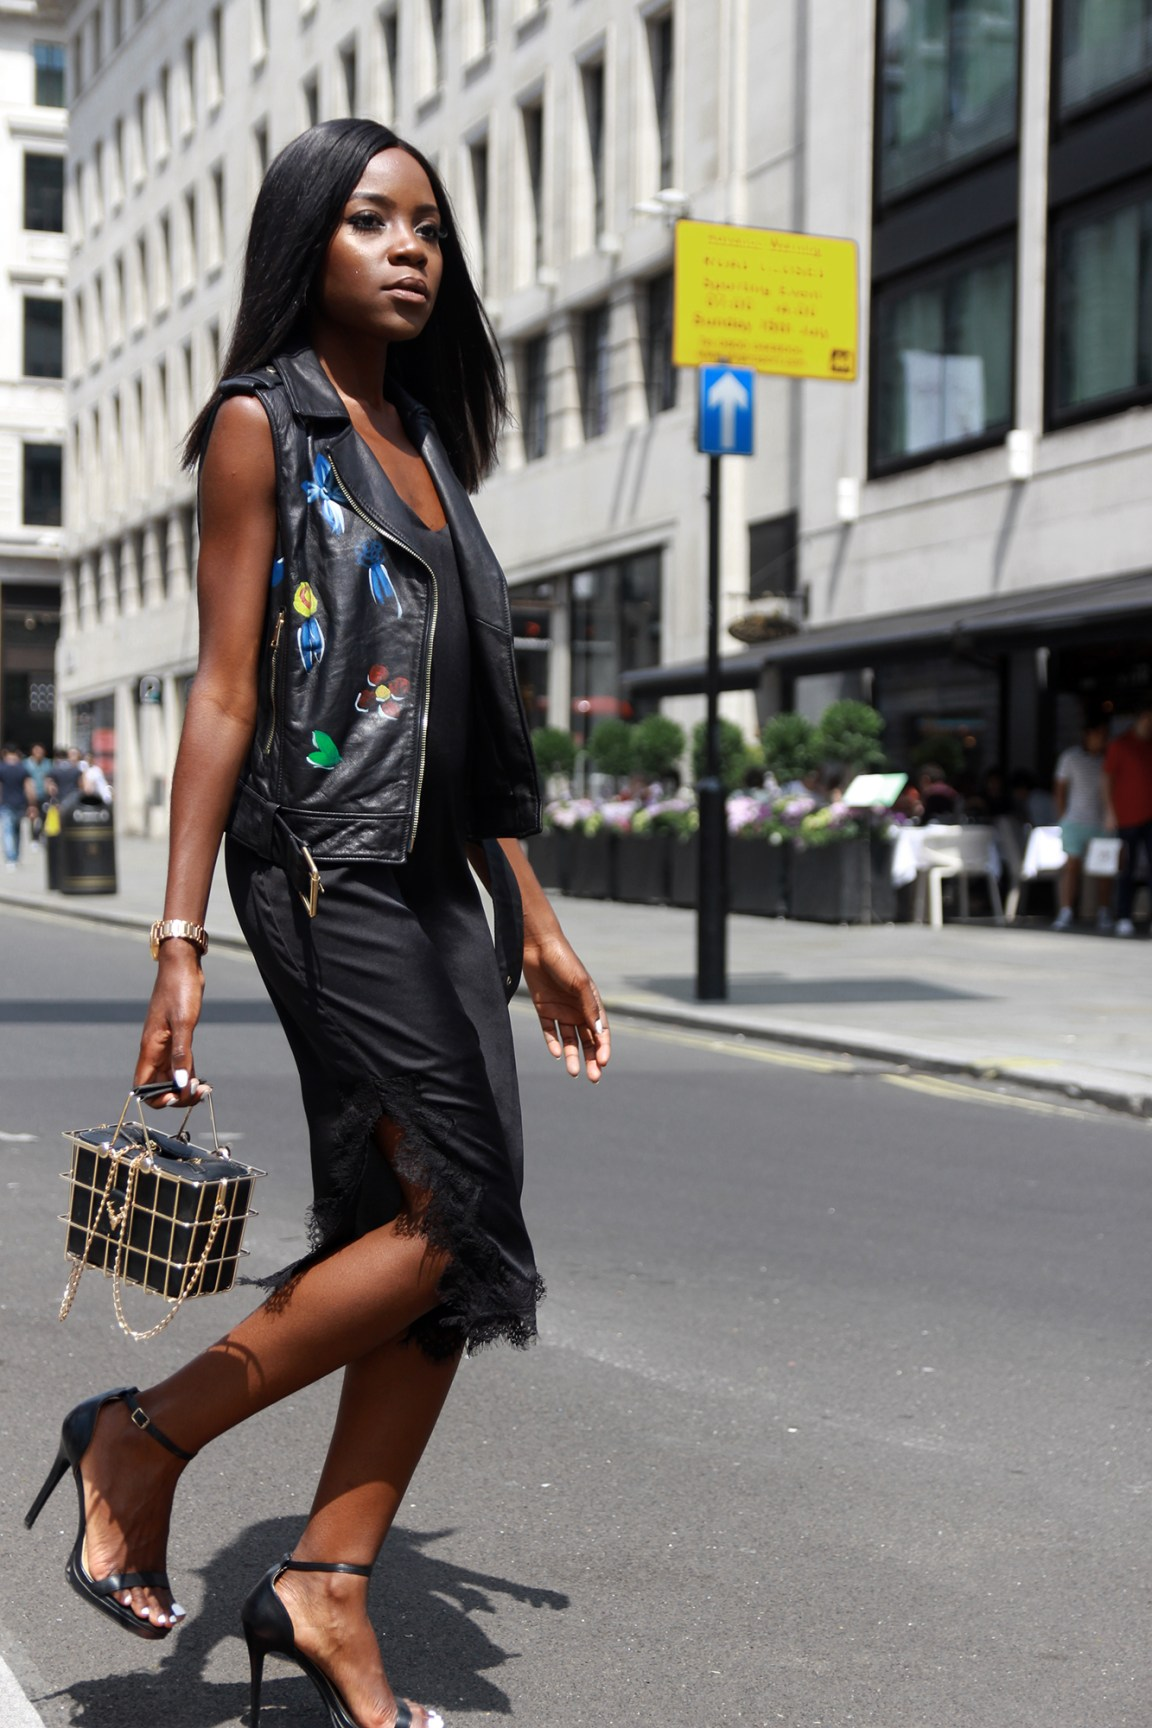 All black summer city outfit featuring a sleeveless jacket by Silvian Heach.